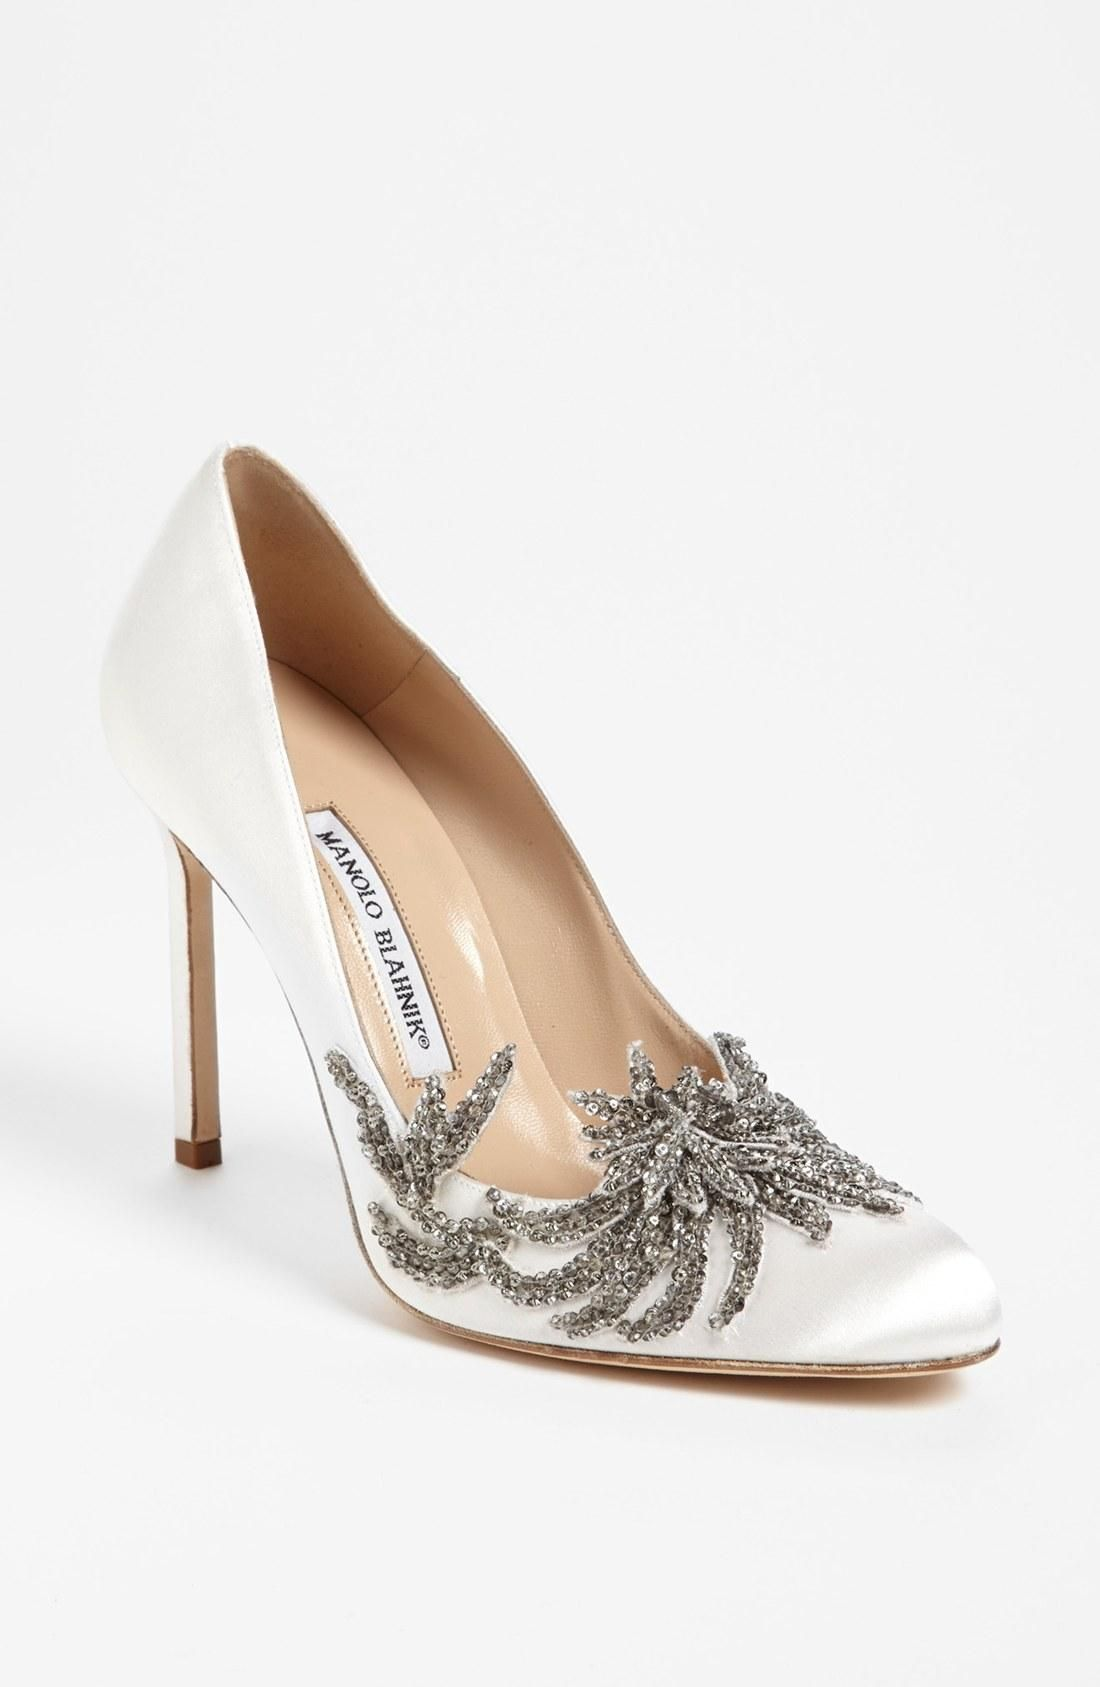 Manolo Blahnik Swan Pump Women Nordstrom Dream Wedding Shoes Manolo Blahnik Manolo Blahnik Heels